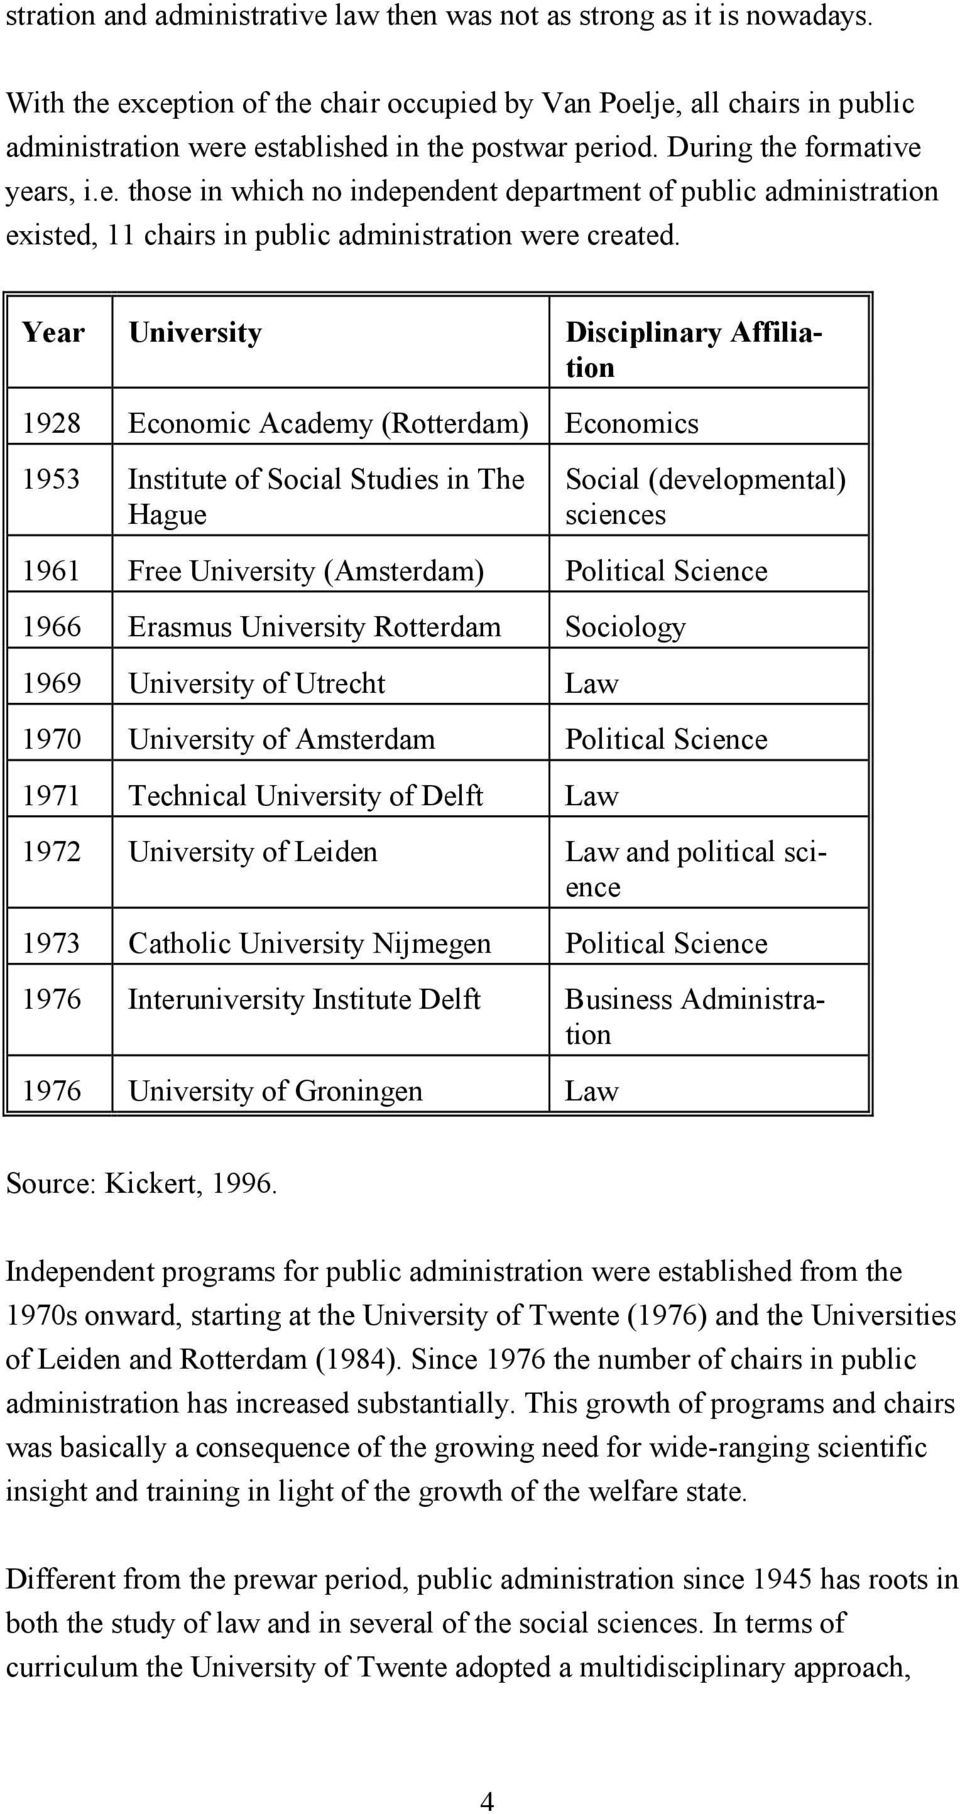 Year University Disciplinary Affiliation 1928 Economic Academy (Rotterdam) Economics 1953 Institute of Social Studies in The Hague Social (developmental) sciences 1961 Free University (Amsterdam)